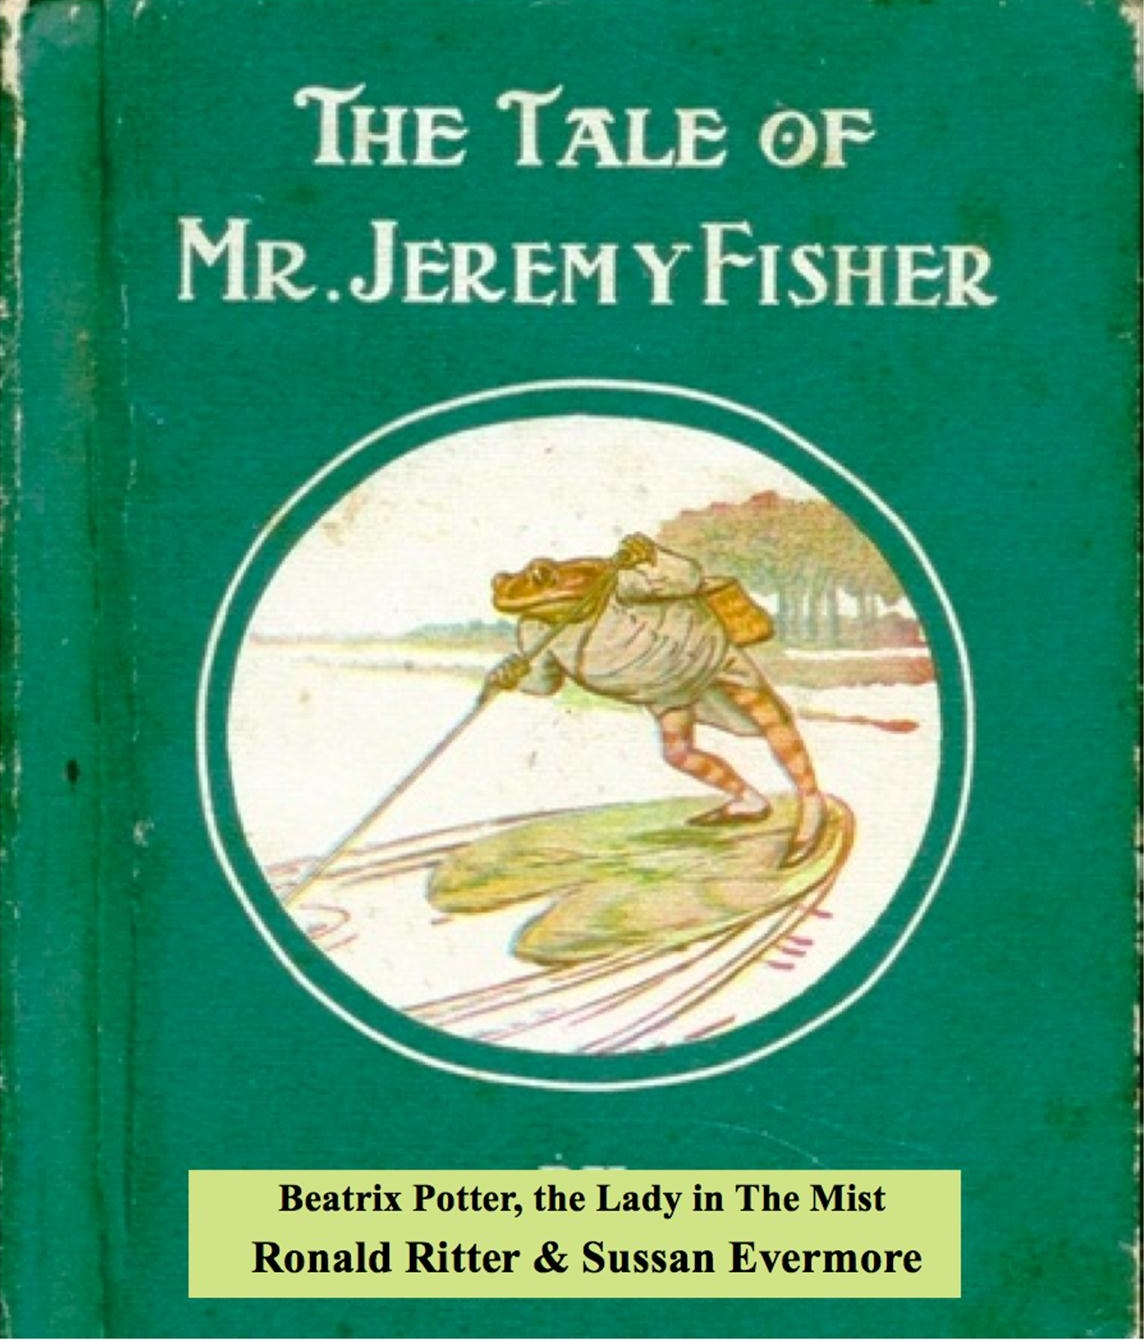 The Tale of  Mr. Jeremy Fisher & Beatrix Potter, The lady in The Mist